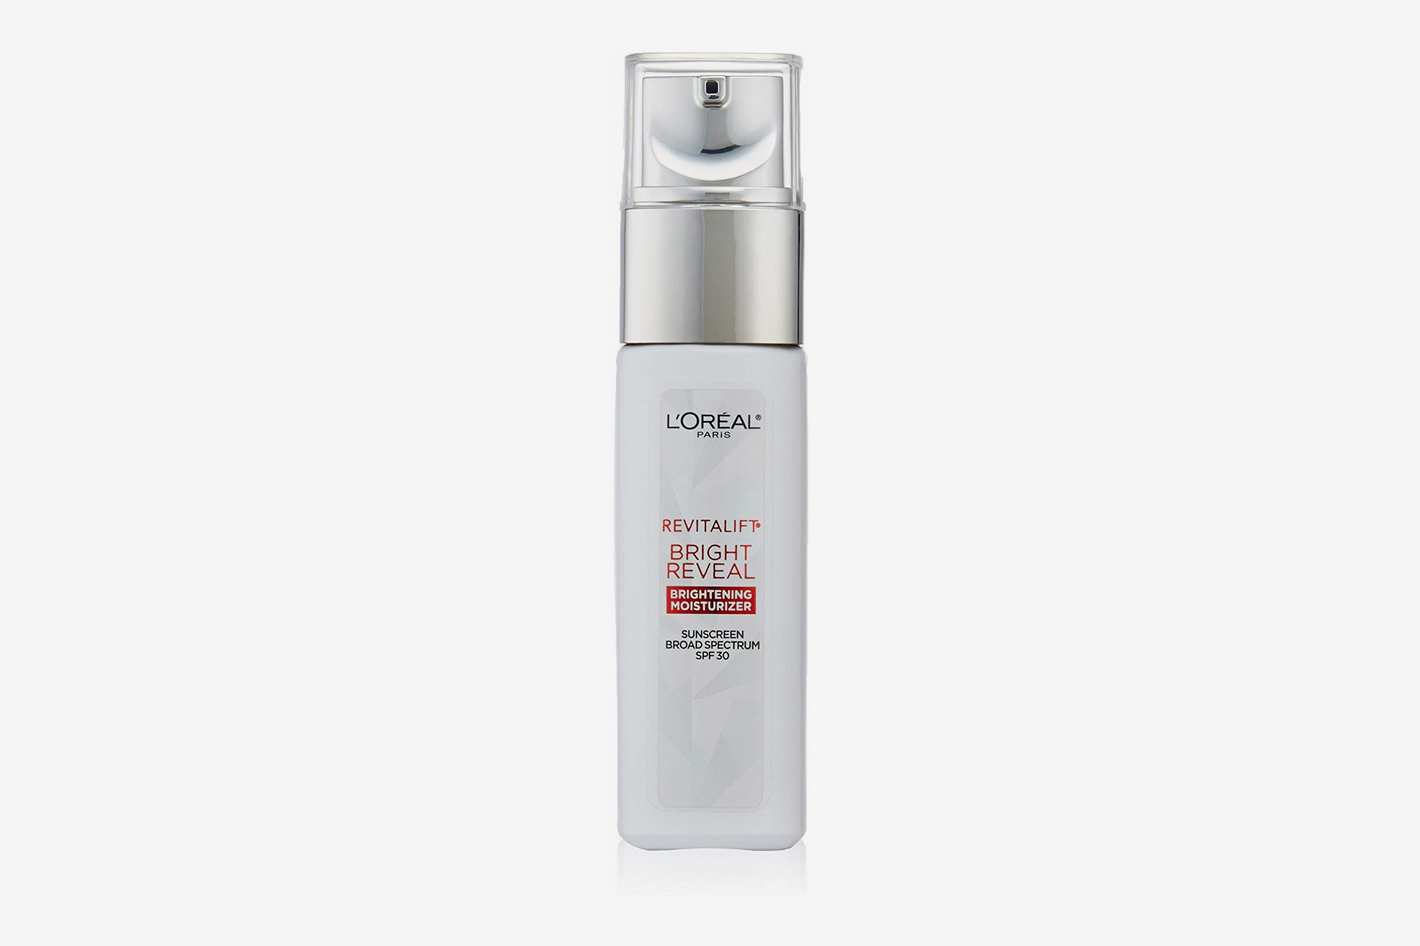 Face Moisturizer with SPF 30 by L'Oreal Paris